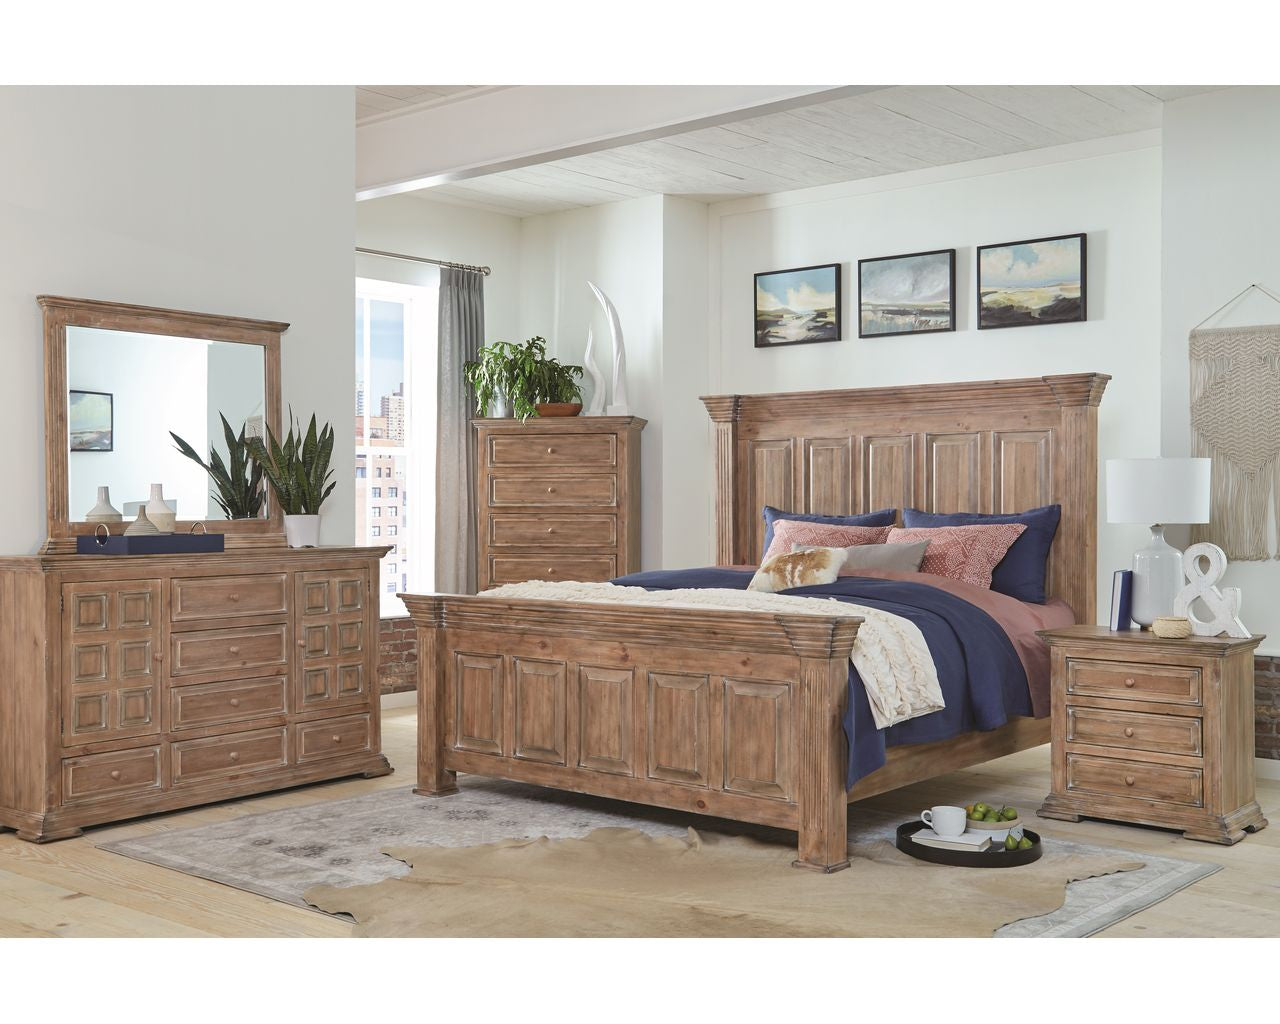 Brittany - Lifestyle Furniture